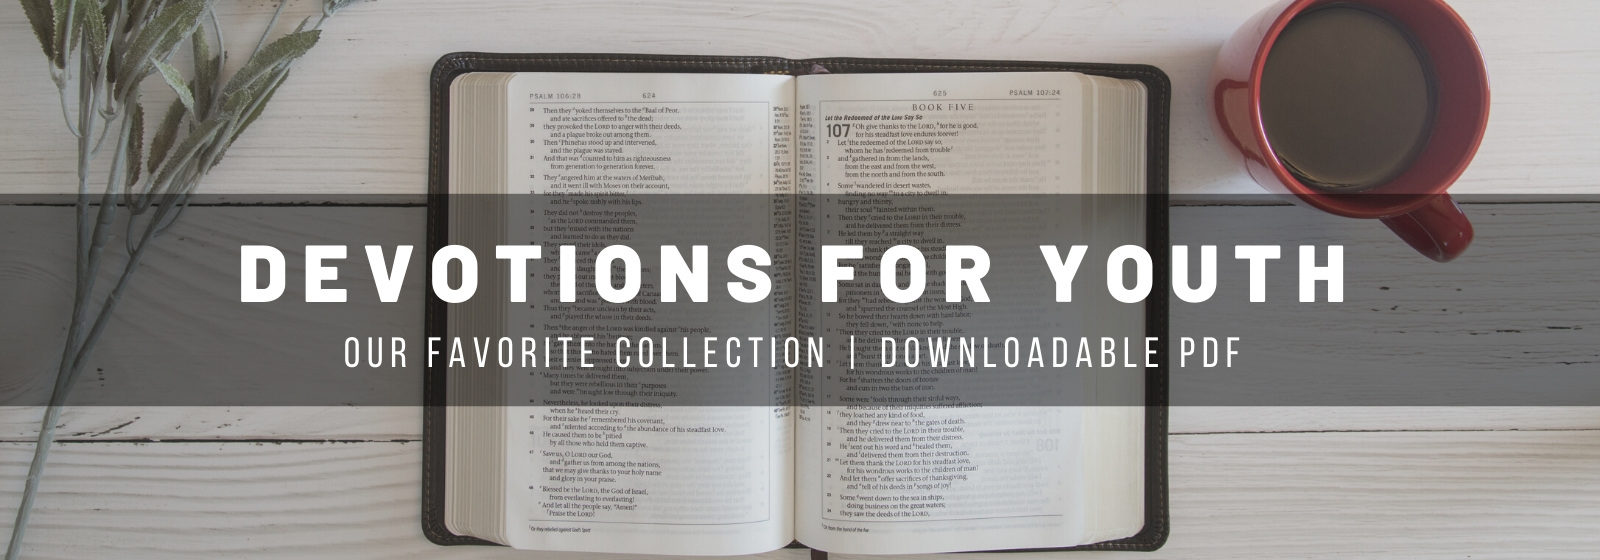 devotions for youth and teens